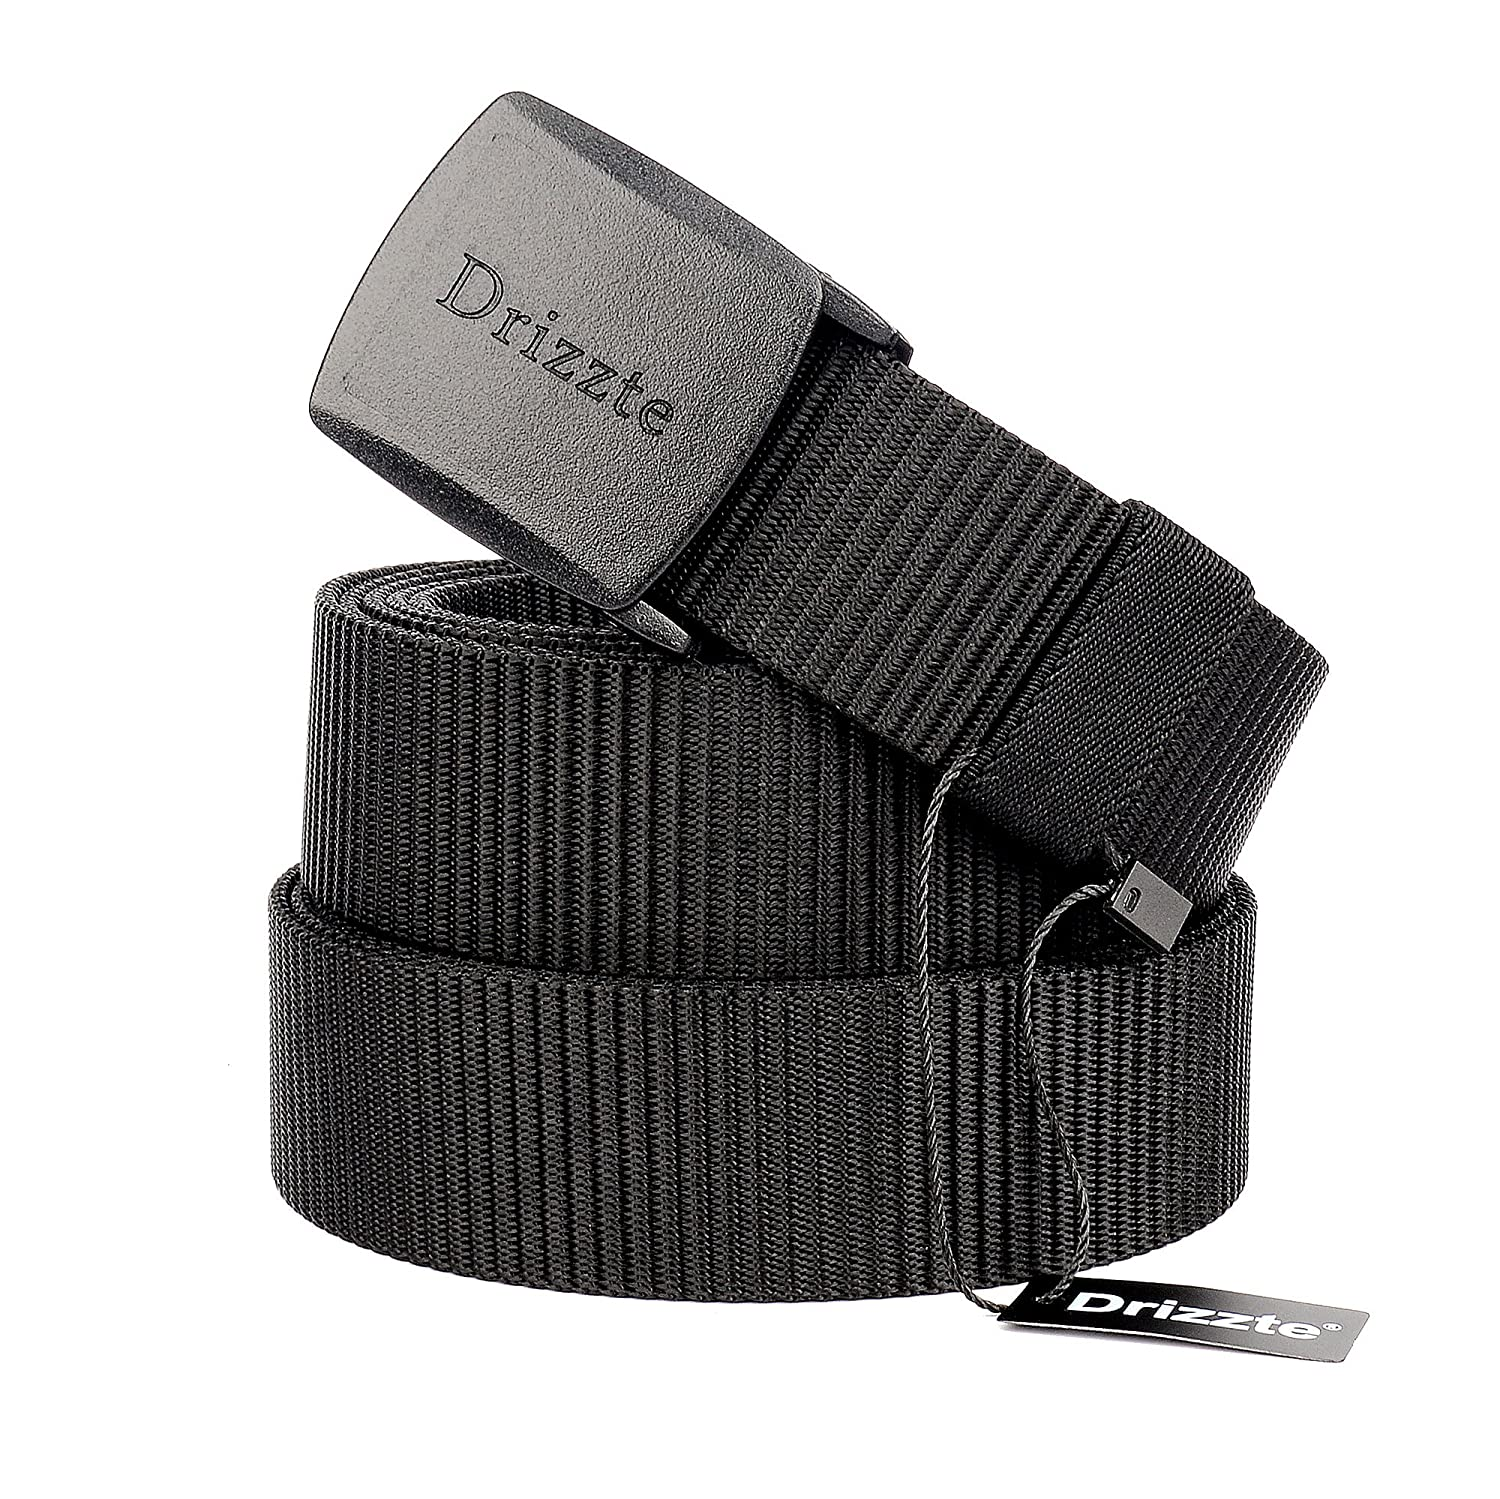 Drizzte Plus Size 51-79'' Men's Black Nylon Military Tactical Plastic Buckle Belt DB008